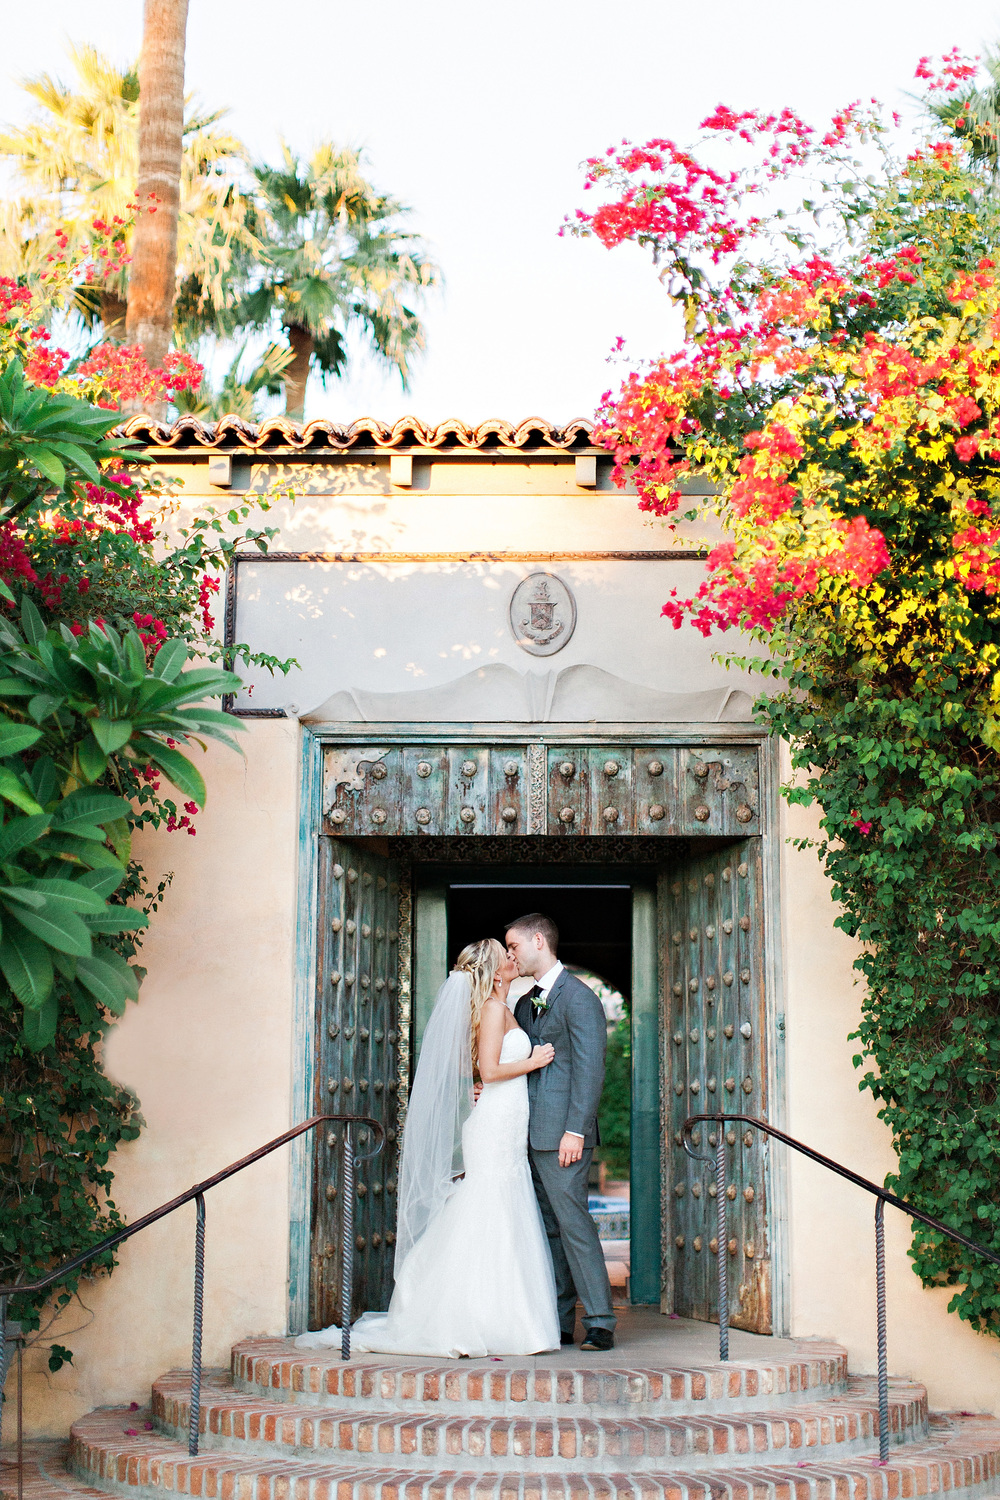 amanda & erick's royal palms resort wedding